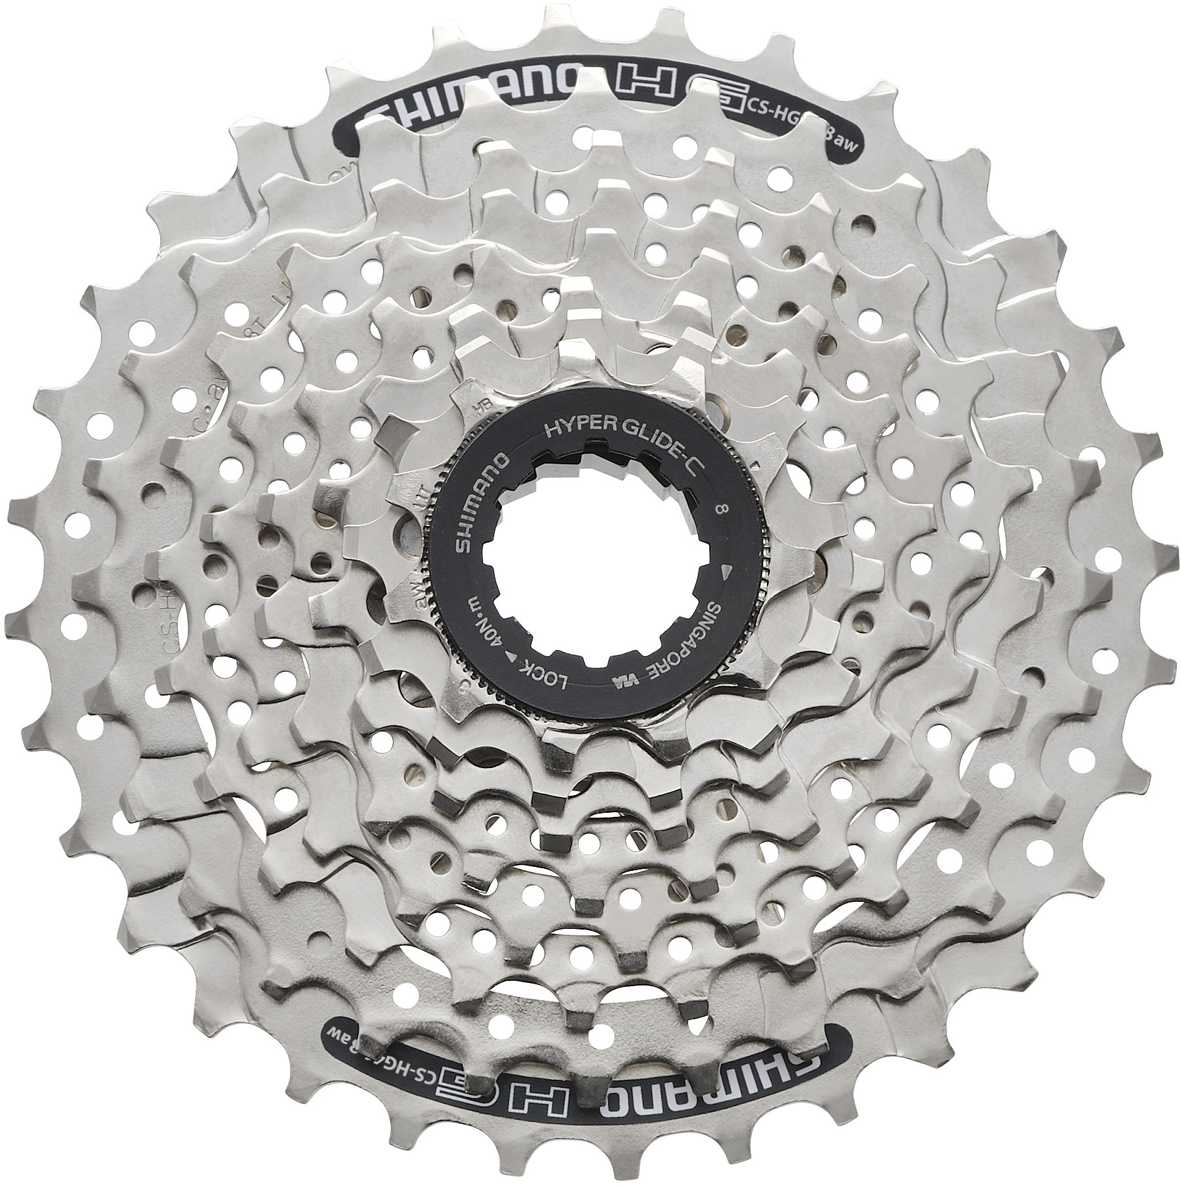 Shimano Altus HG31 8 Speed 11-32 Tooth Cassette - Black